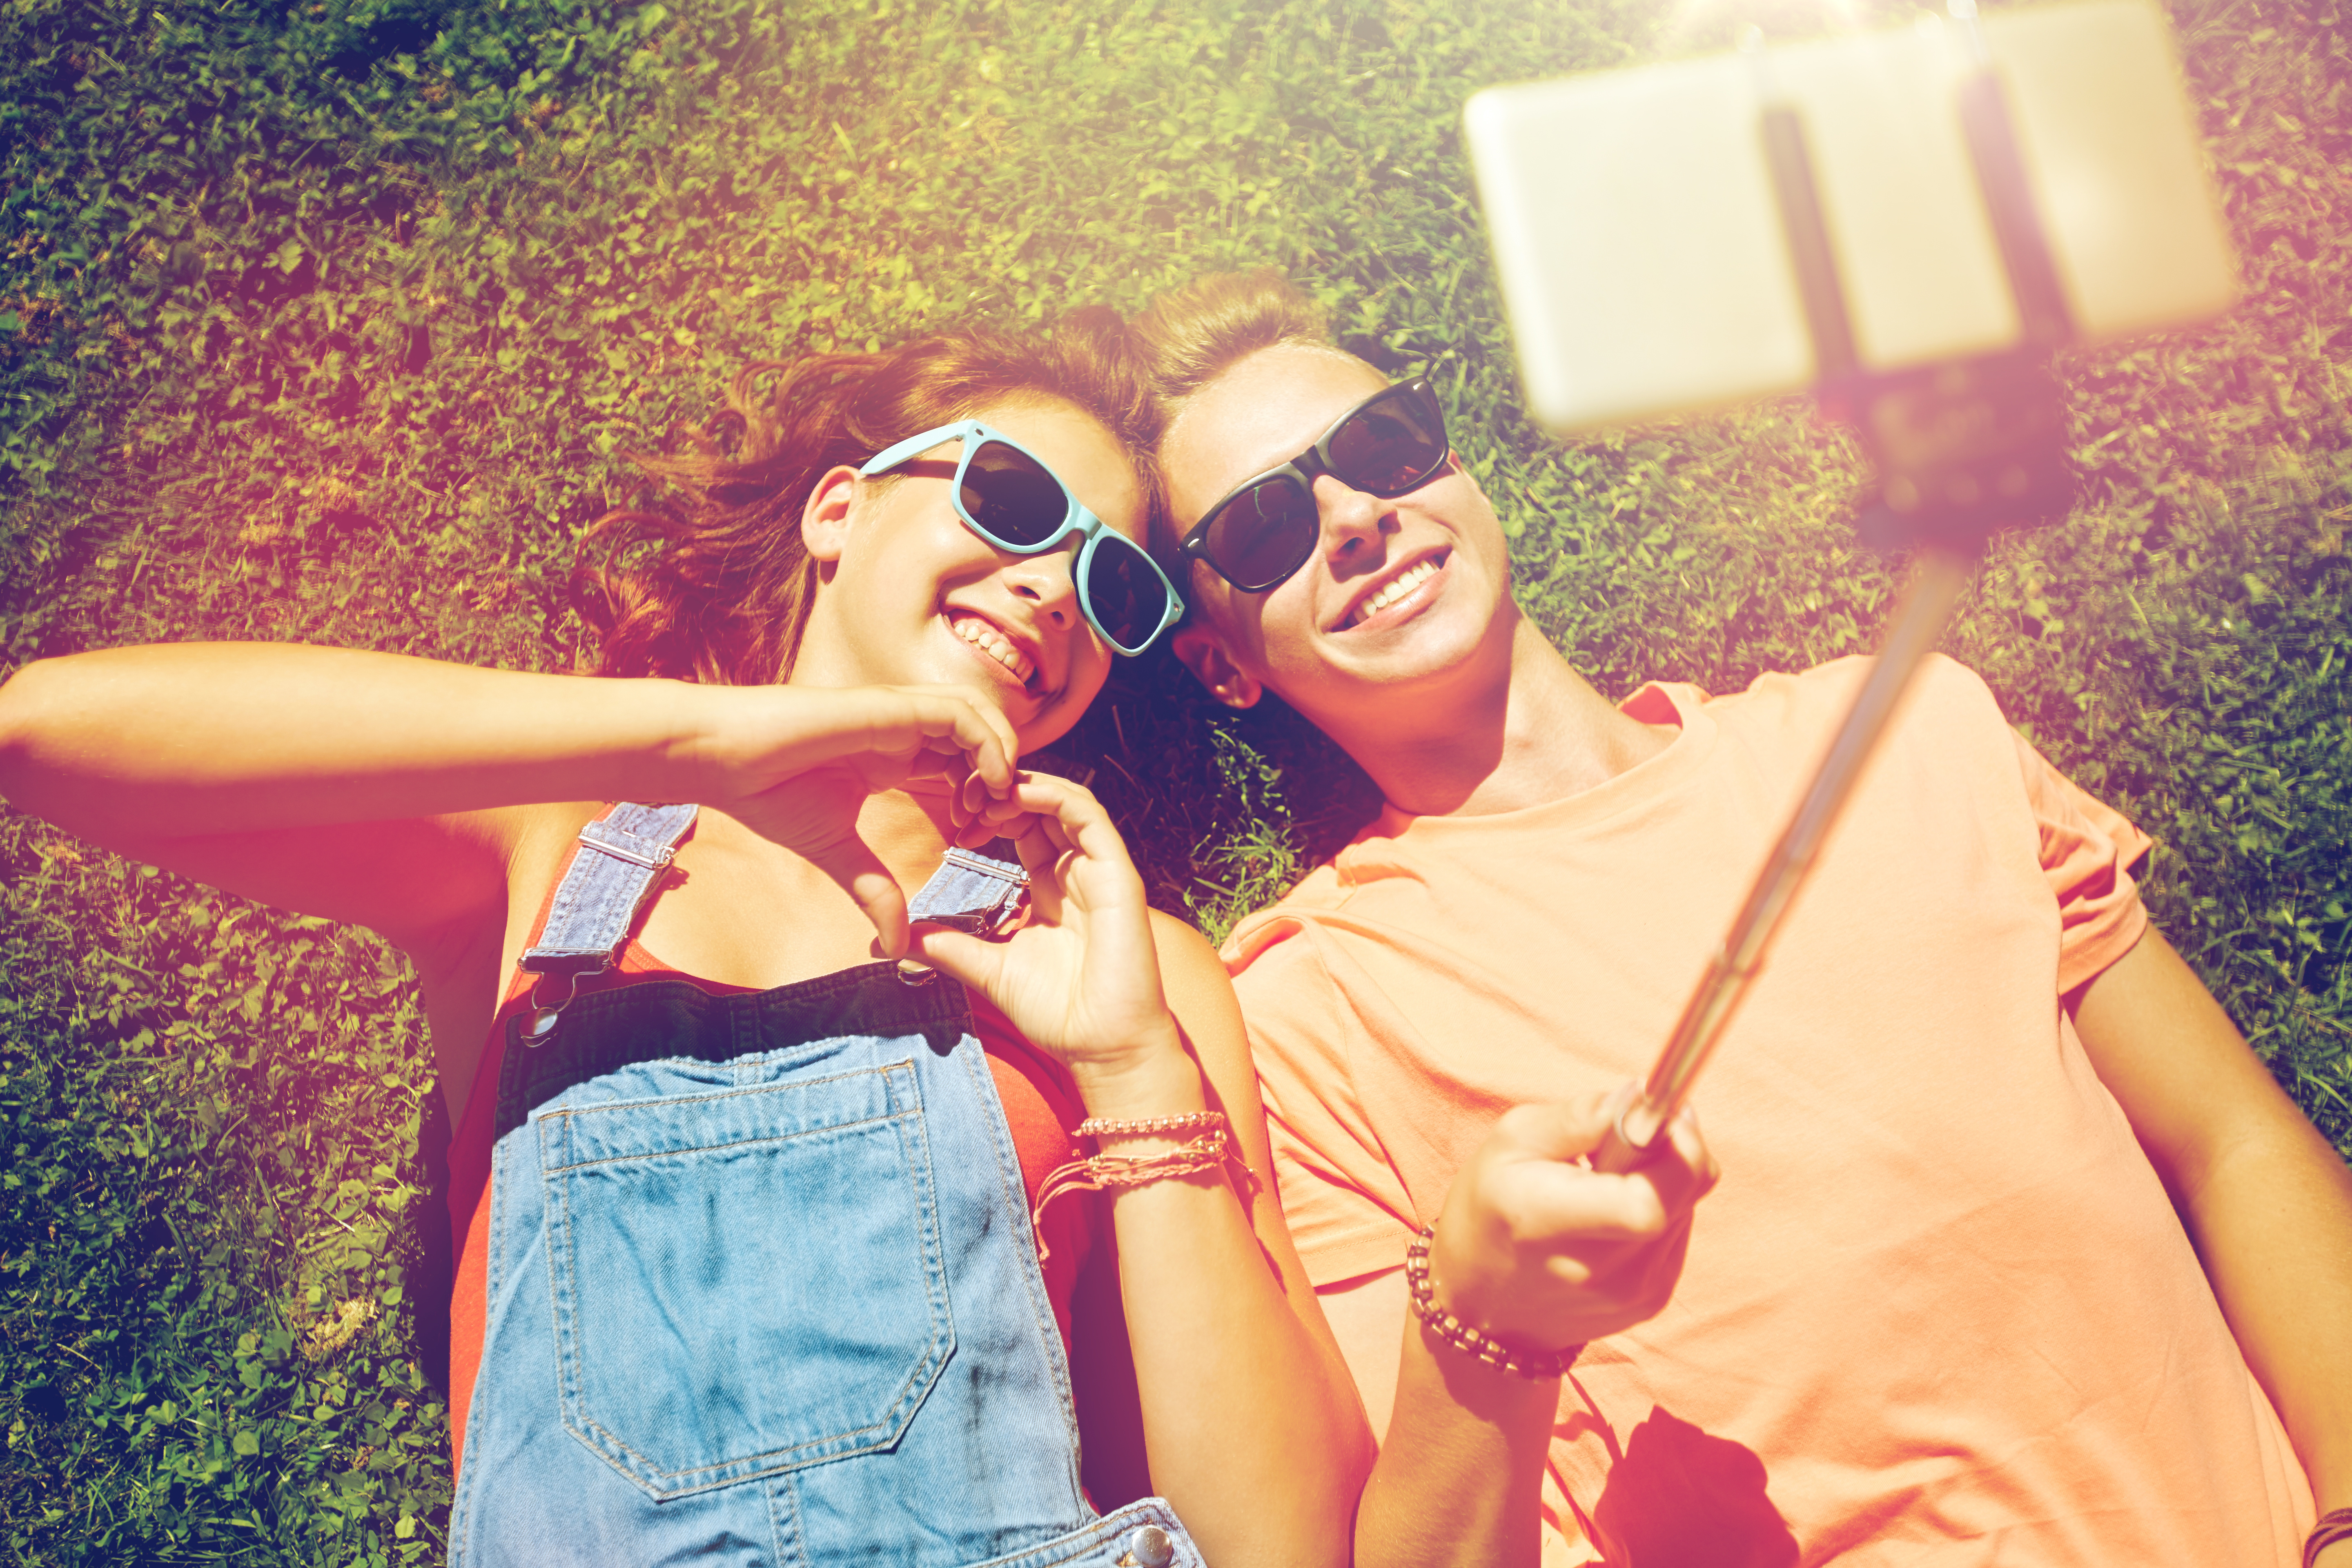 Why We Need to Teach Kids and Teens About Healthy Relationships